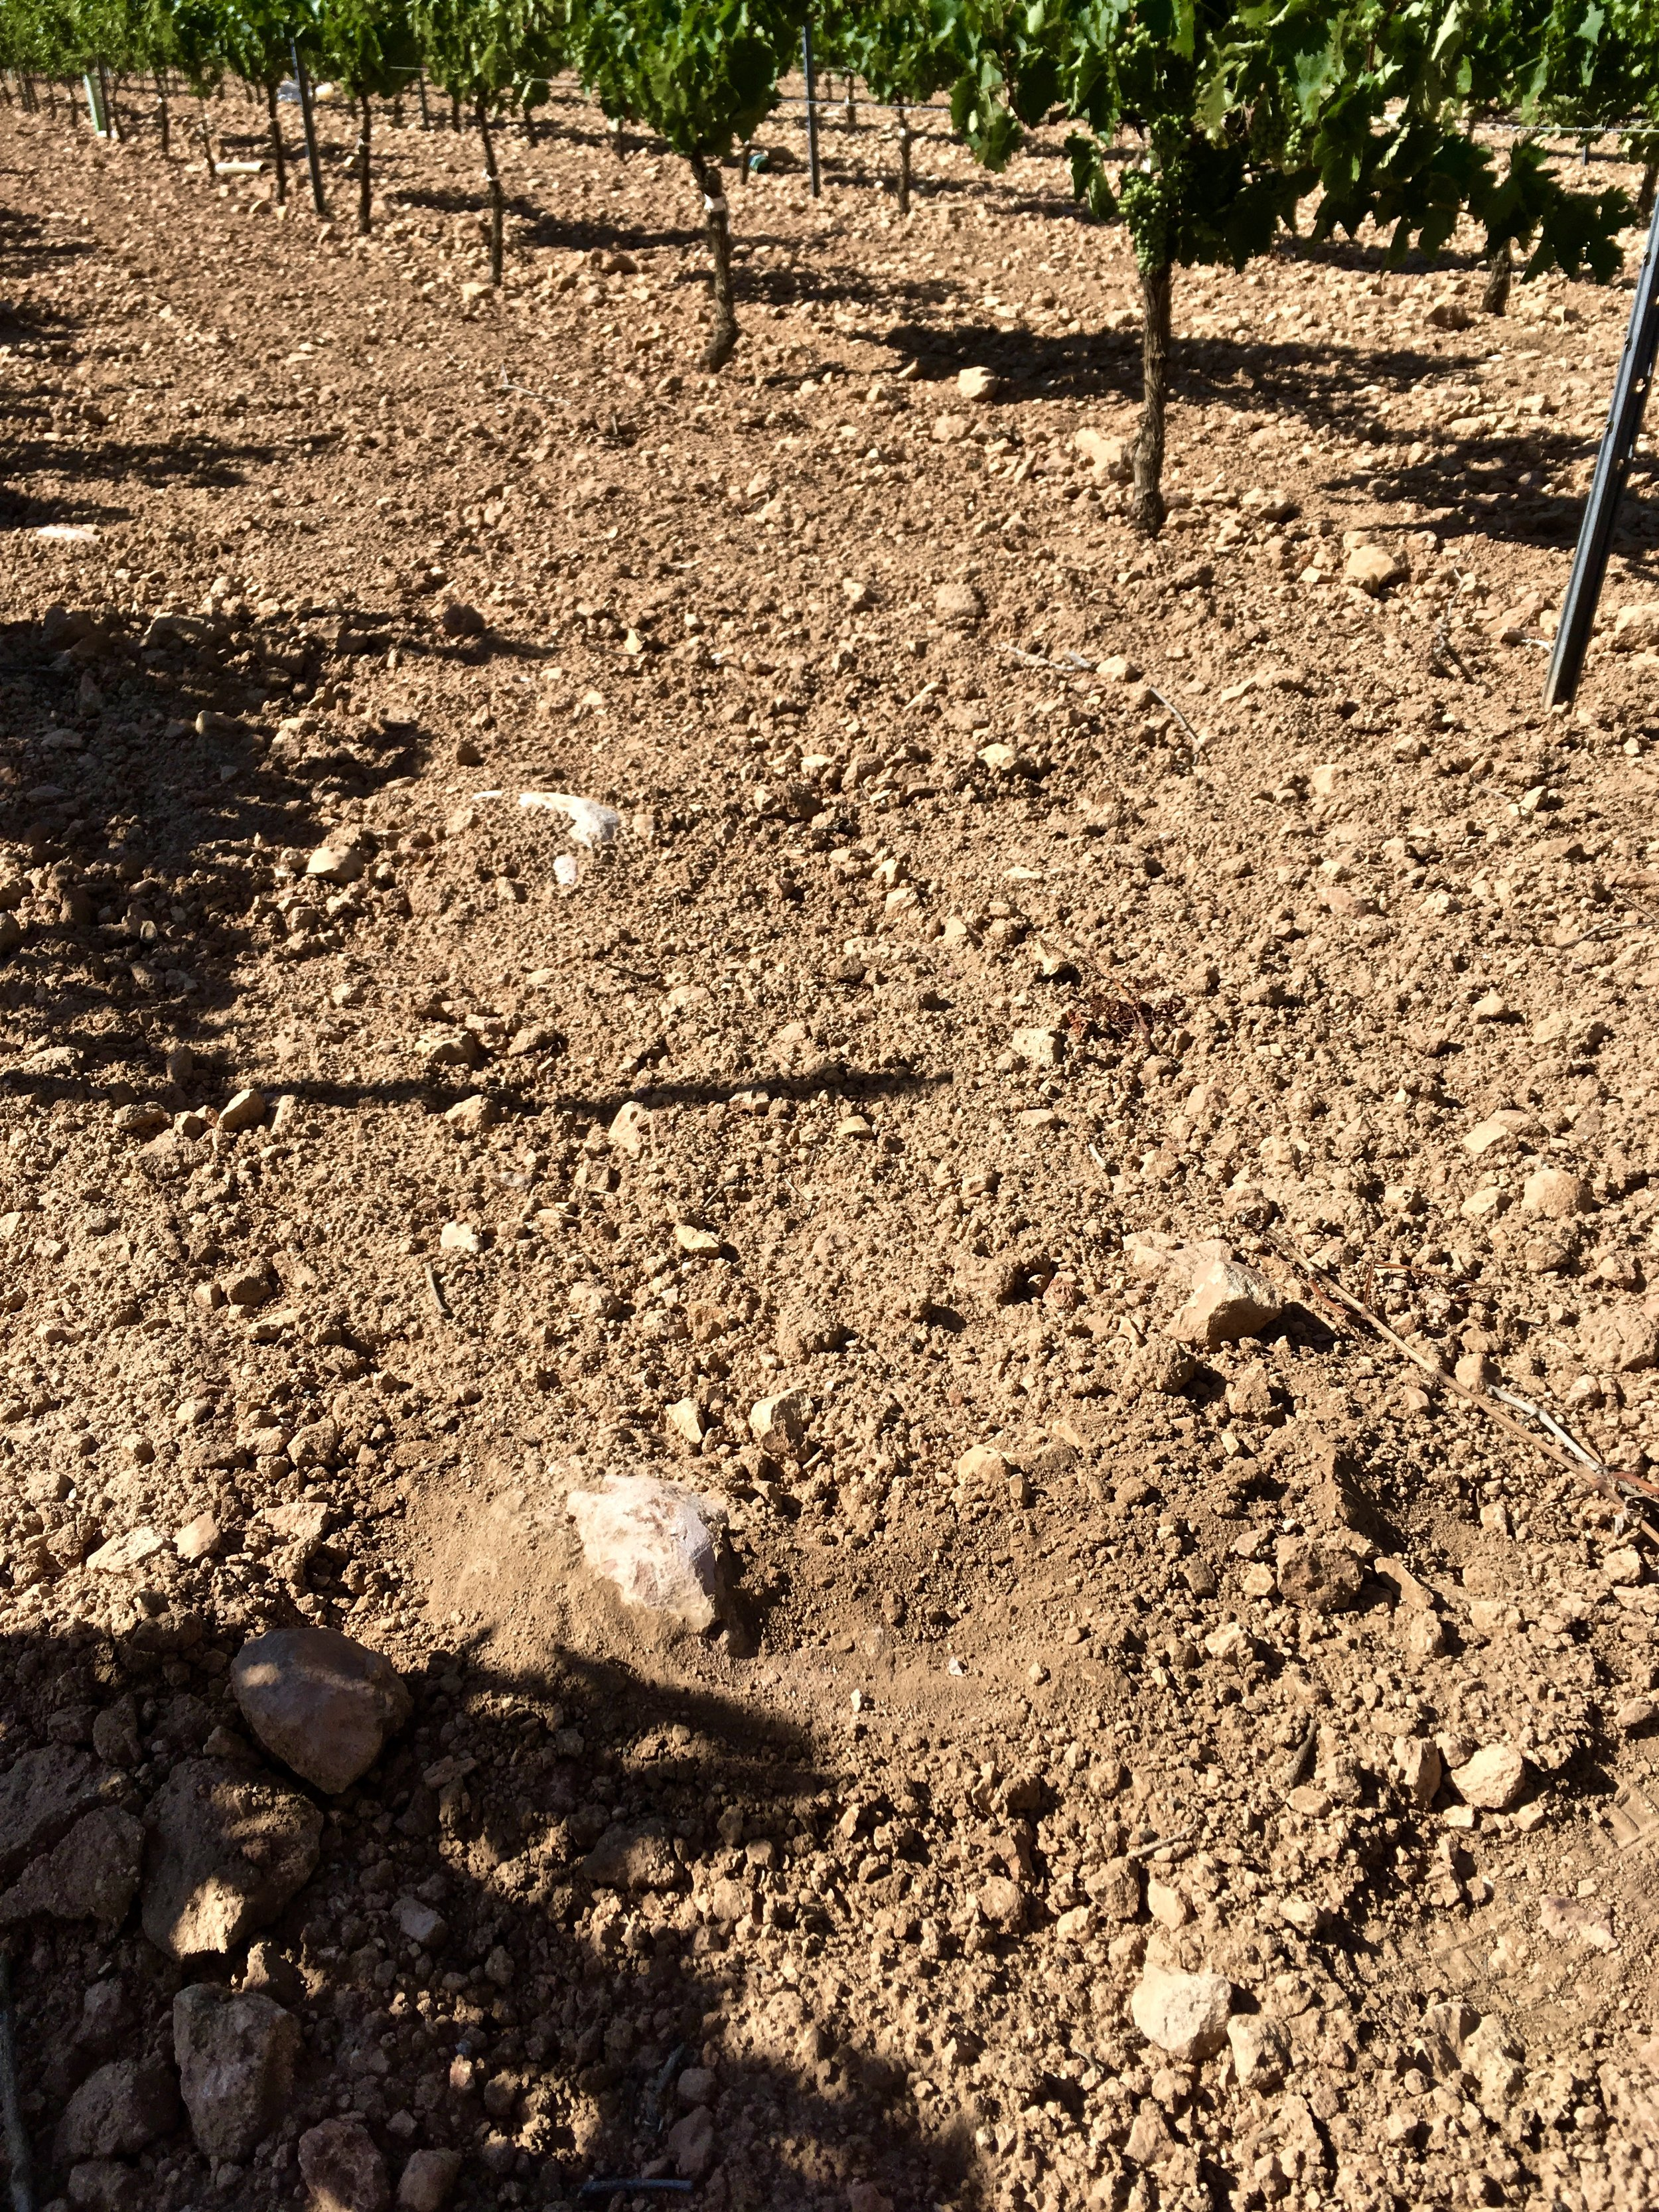 Soils (Calcareous nature beneath, hello acidity!) | La Motilla vineyard